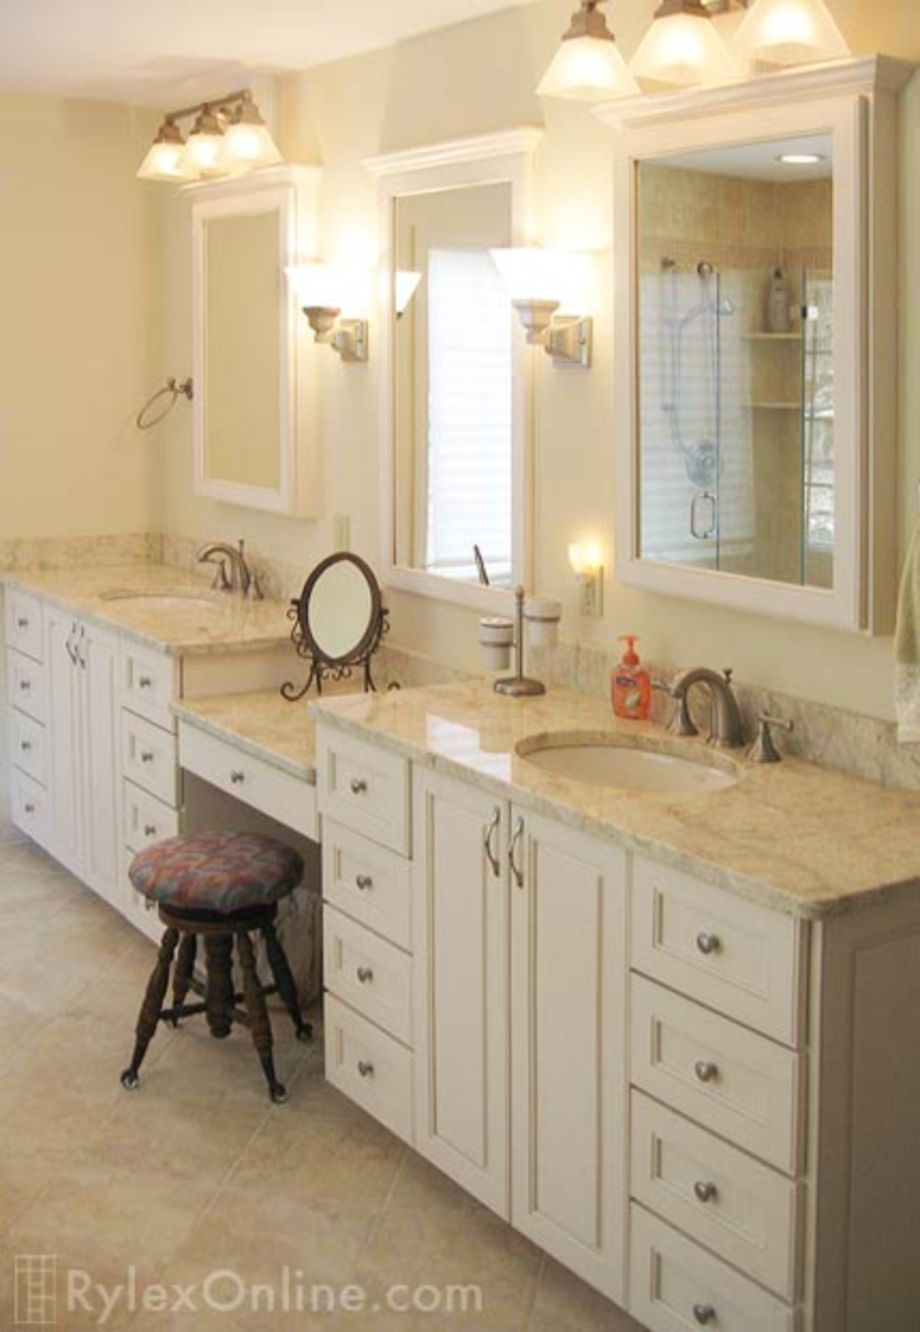 Bathroom Vanity With Makeup Vanity Attached Choice Of Sink And Makeup Area Location 84 Bathr Single Sink Bathroom Vanity Bathroom Vanity Bathroom Sink Vanity